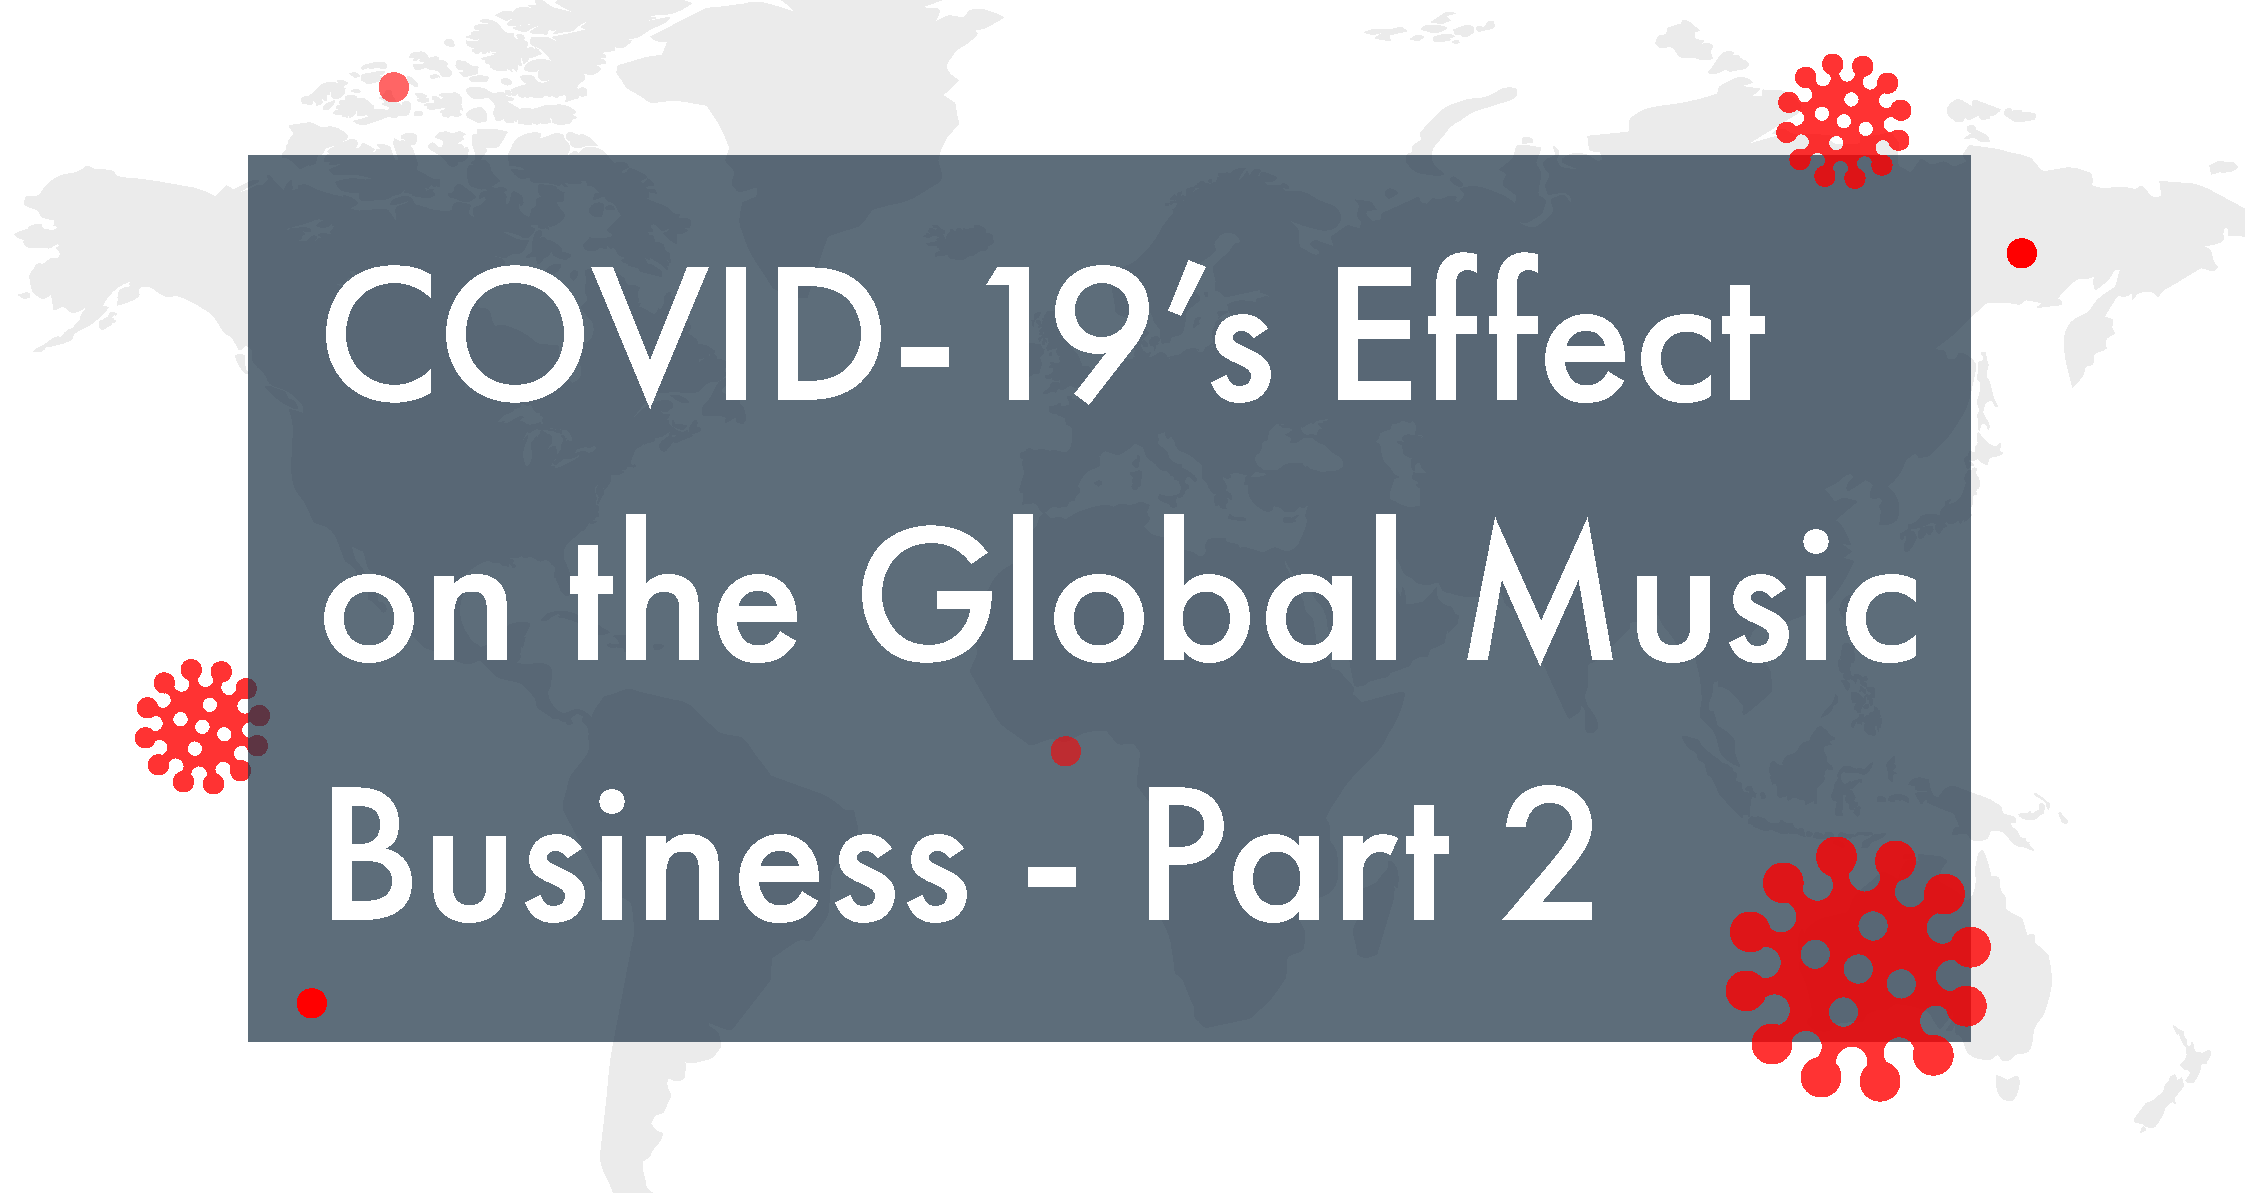 COVID-19's Effect on the Global Music Business, Part 2: Geography